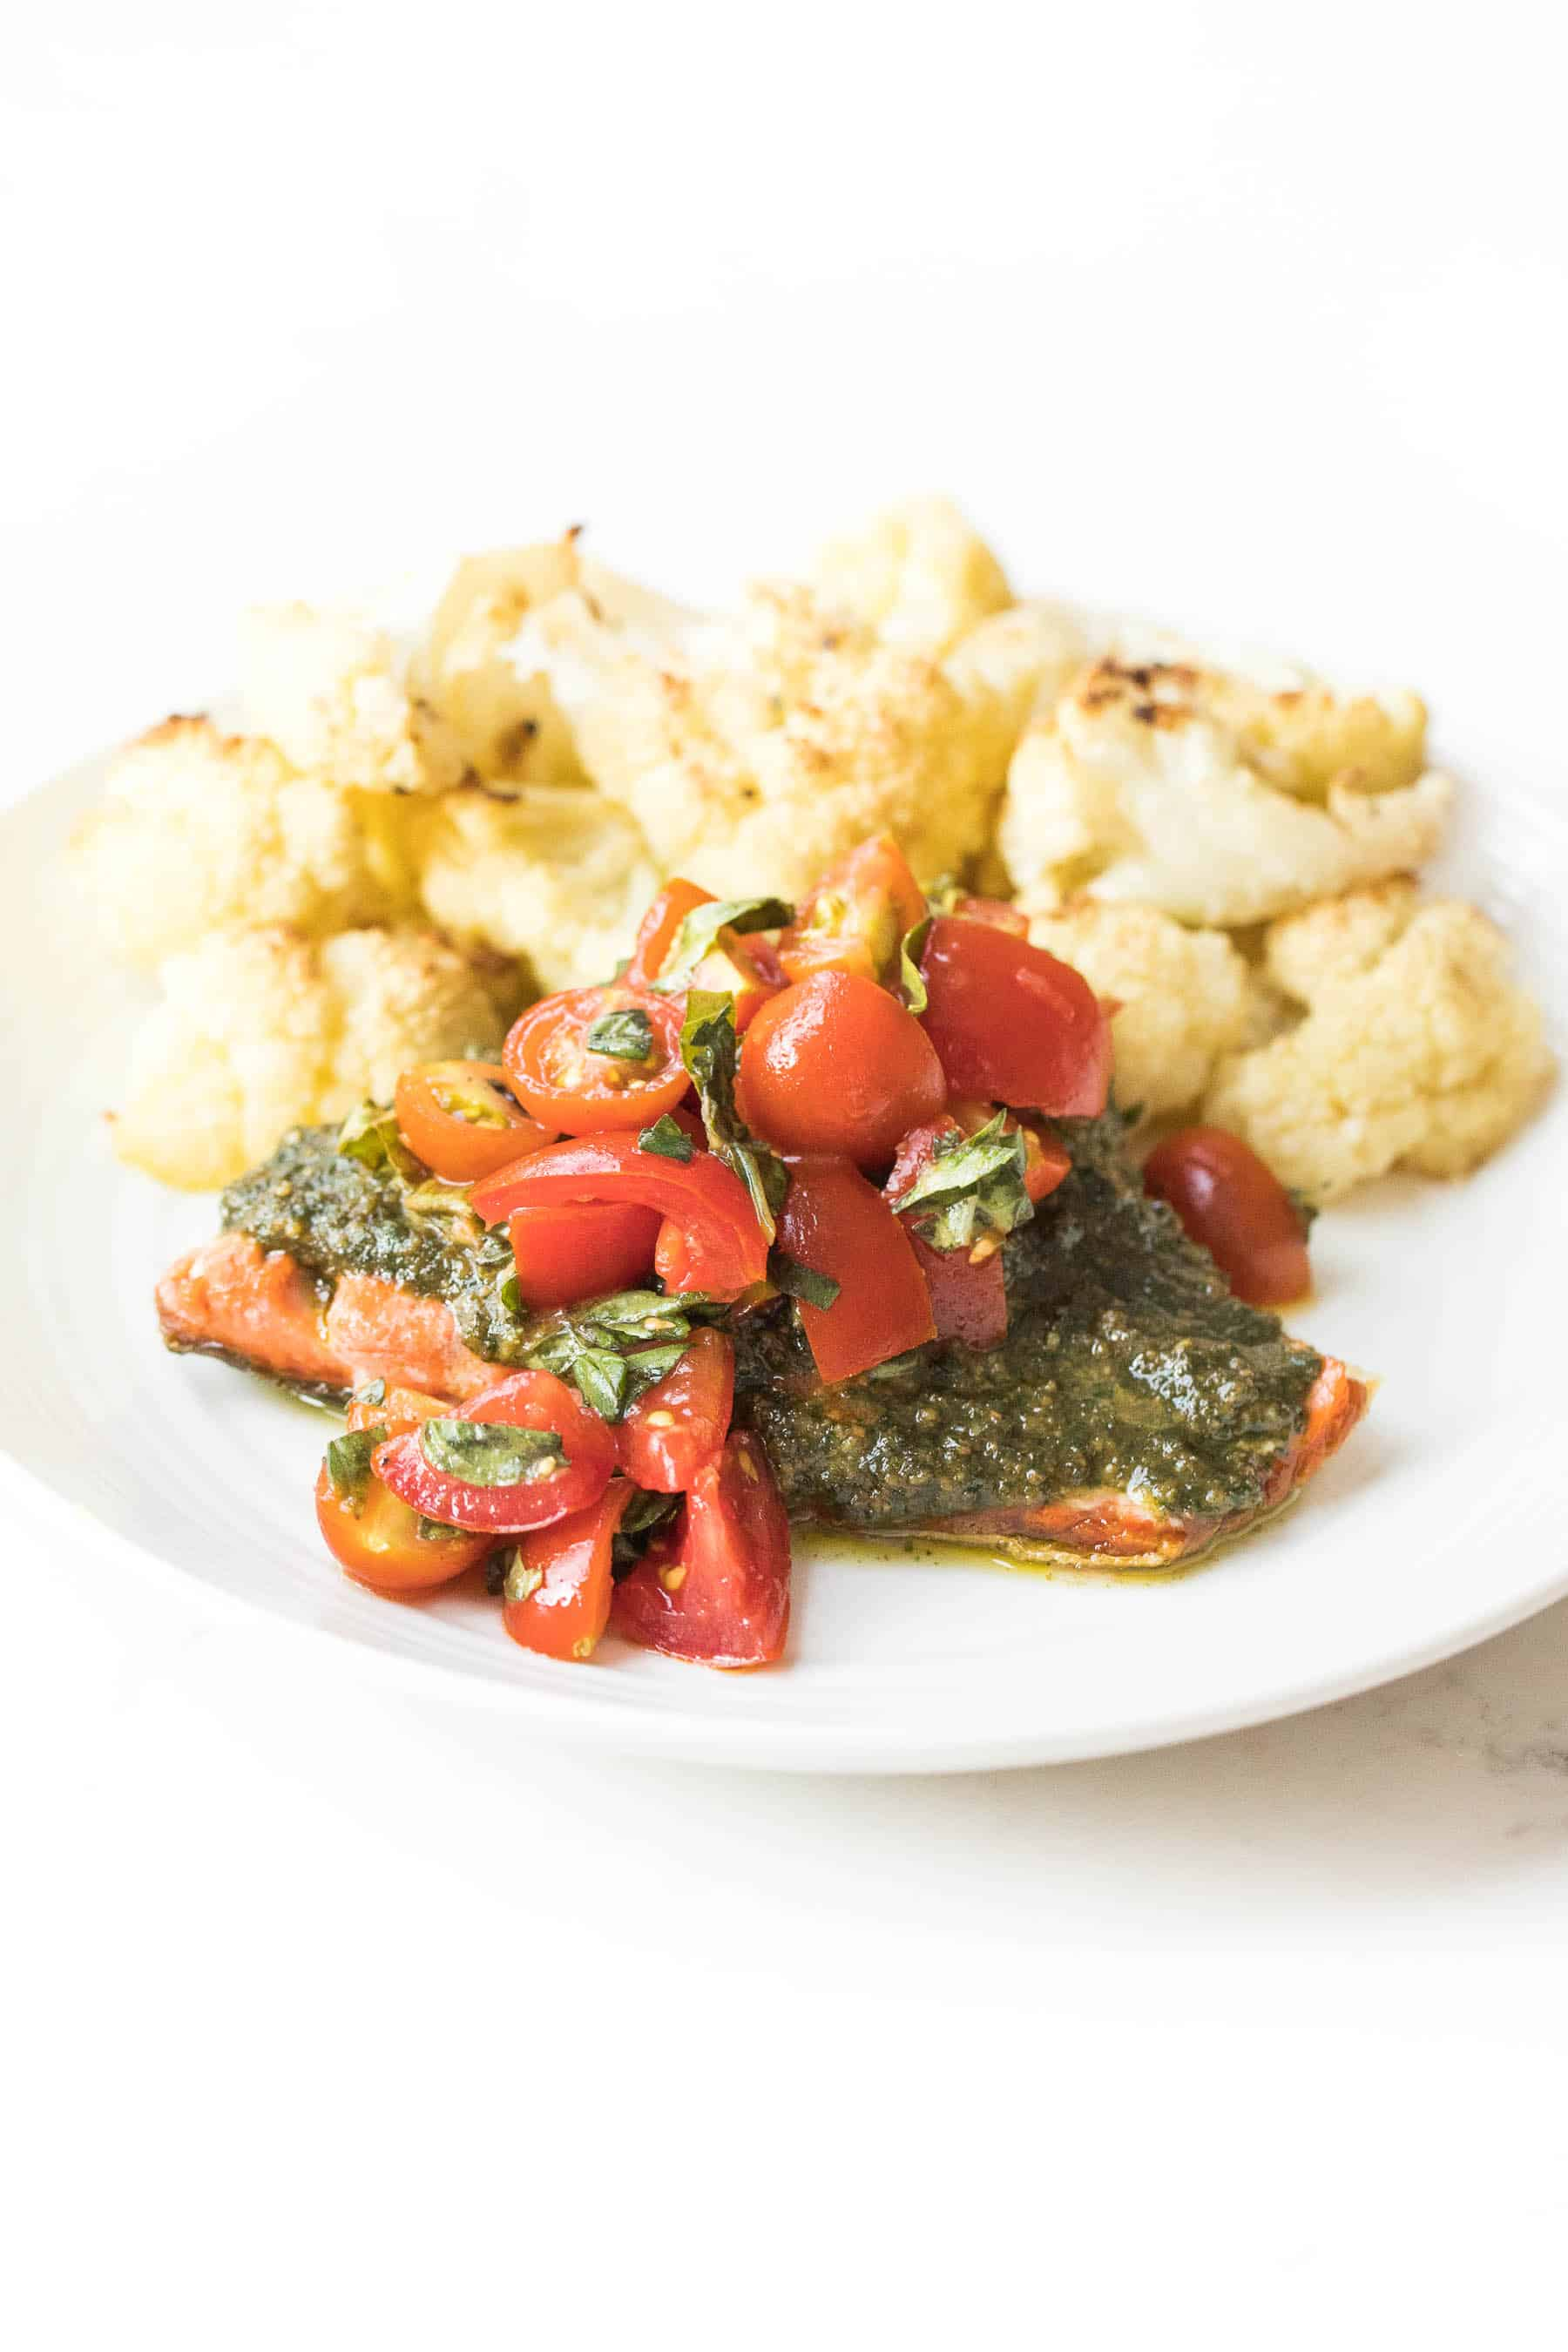 salmon topped with pesto and tomatoes on a white plate and white background